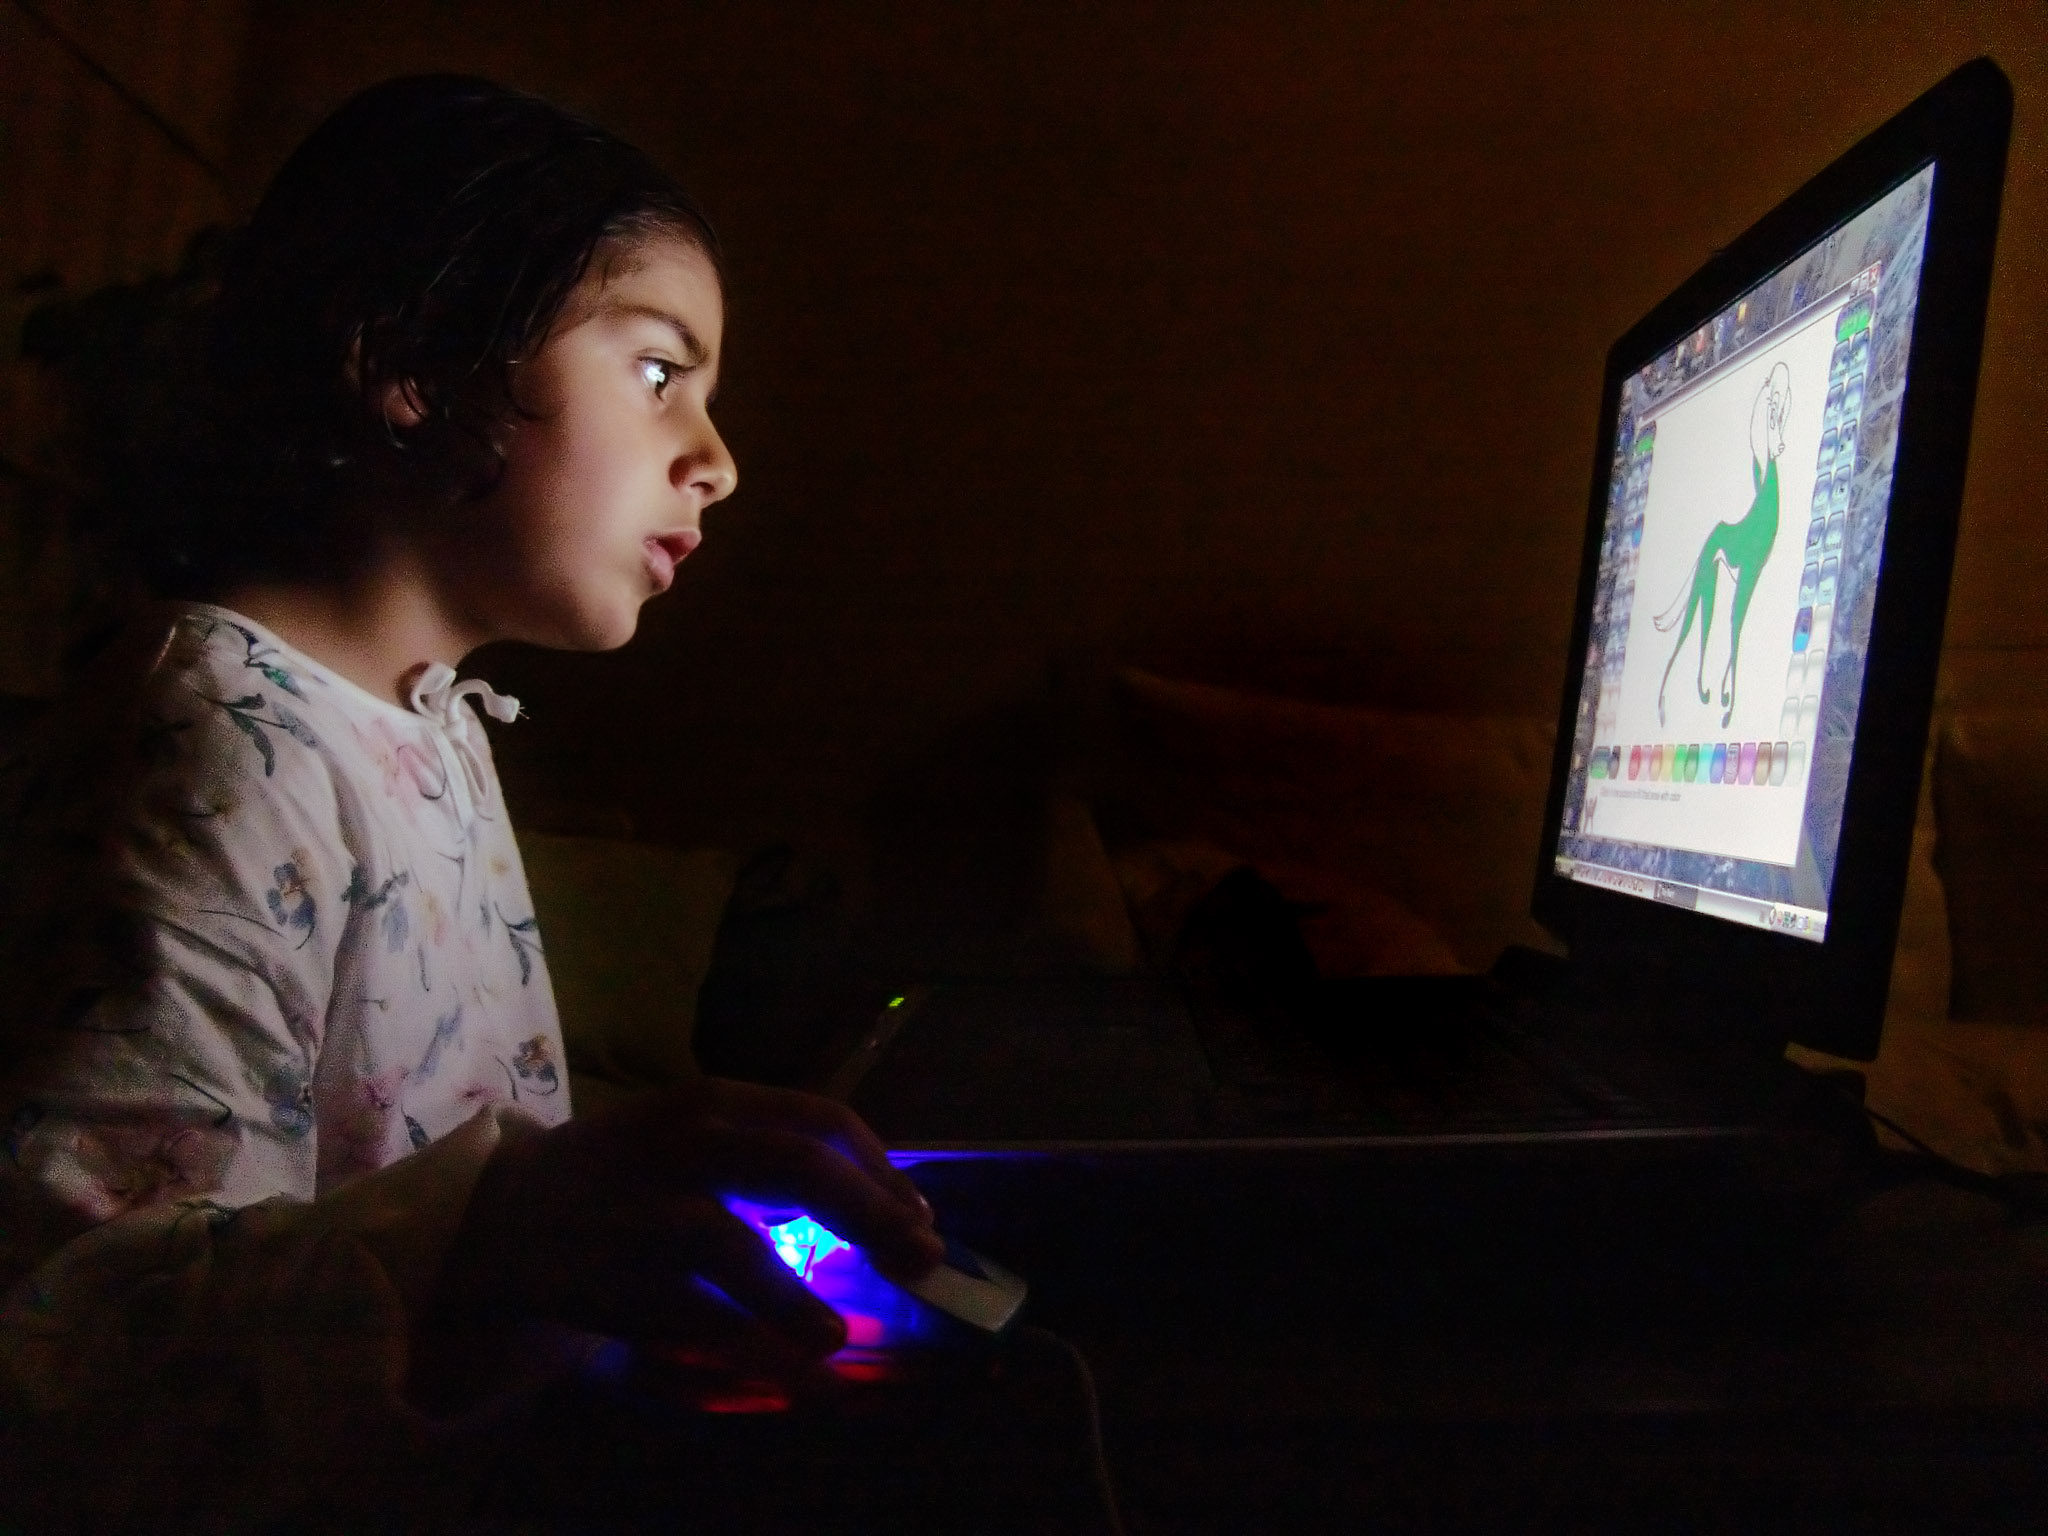 Child_and_Computer_08473.jpg